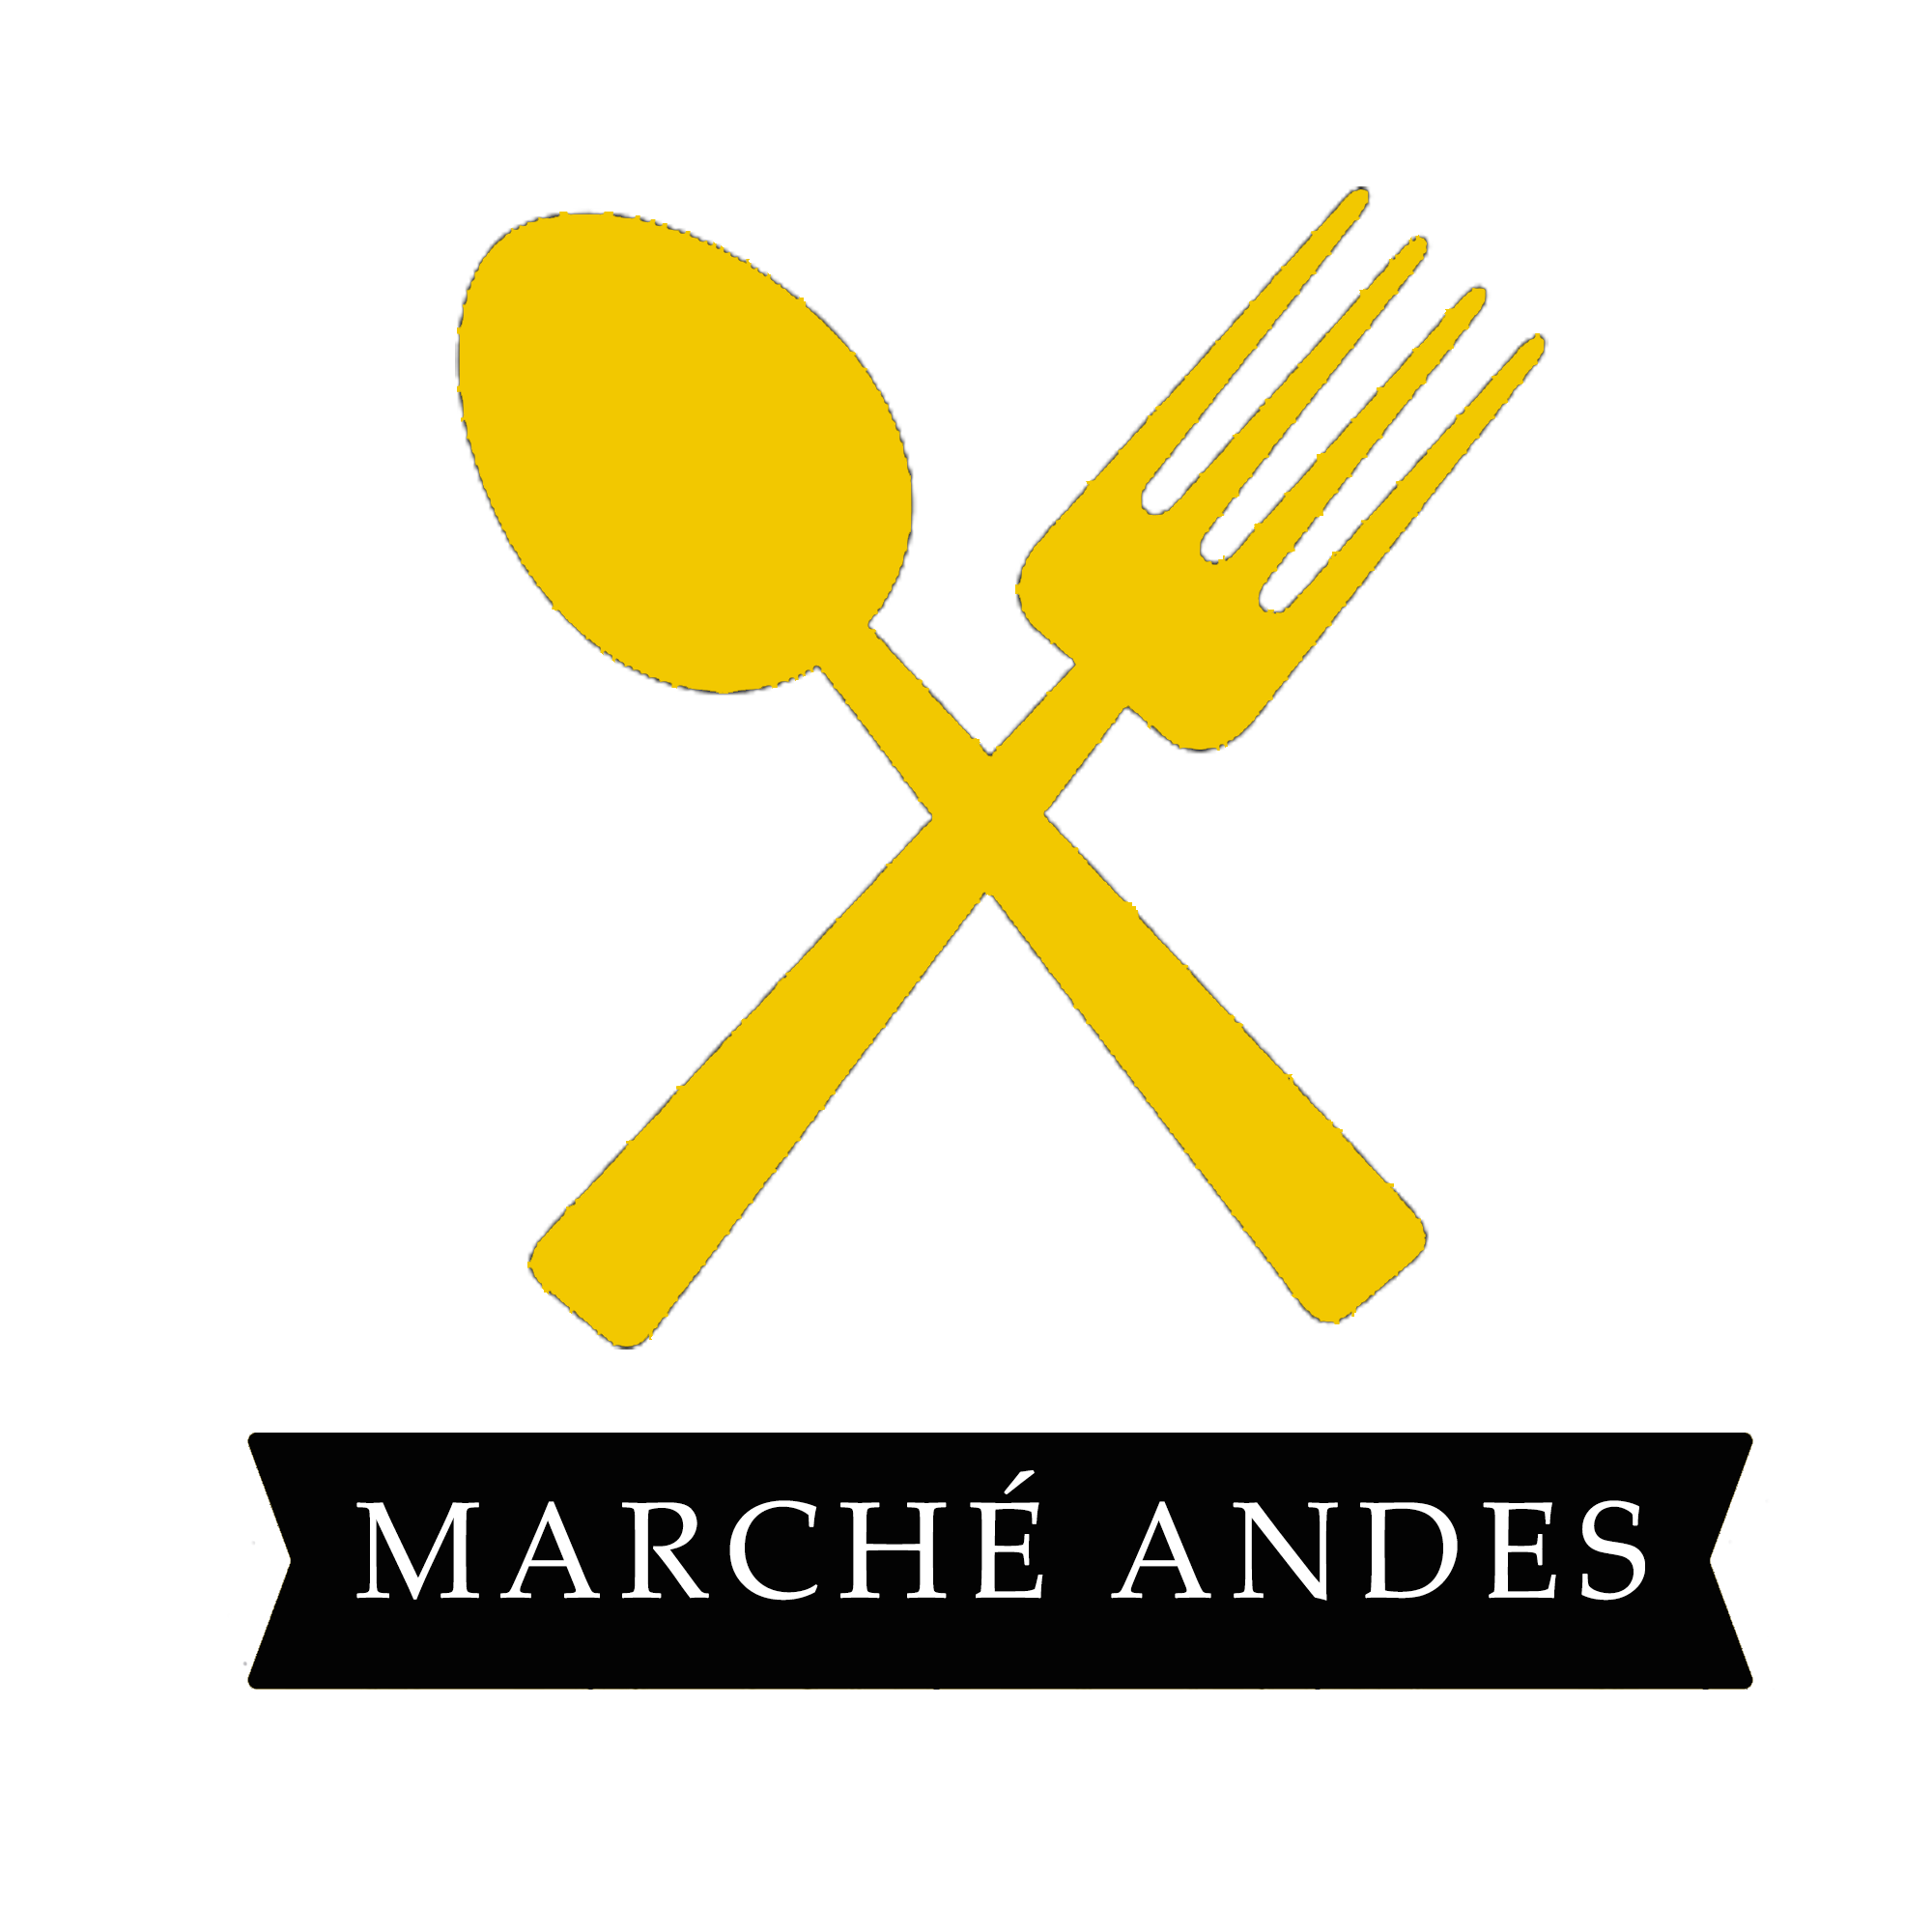 Restaurant Marche Andes